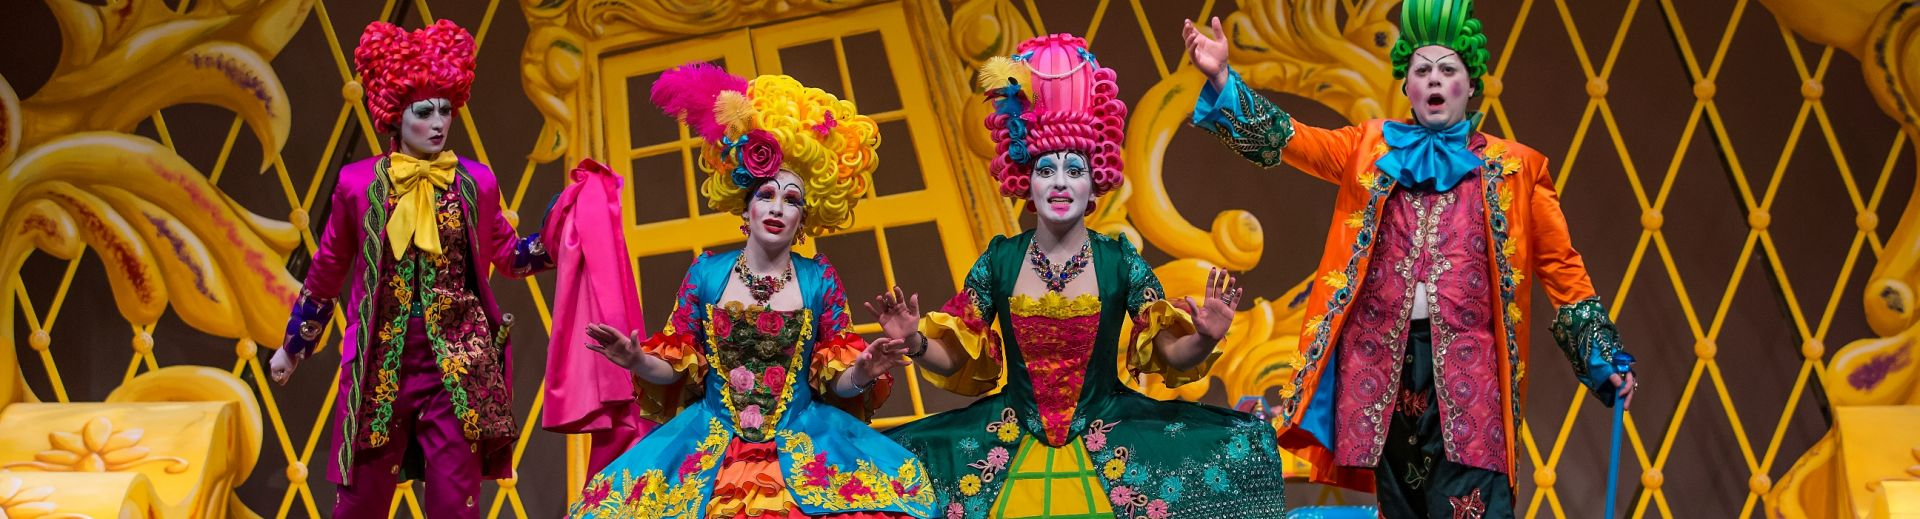 Four vocalists on stage in bright colored costumes and wigs in front of set pieces